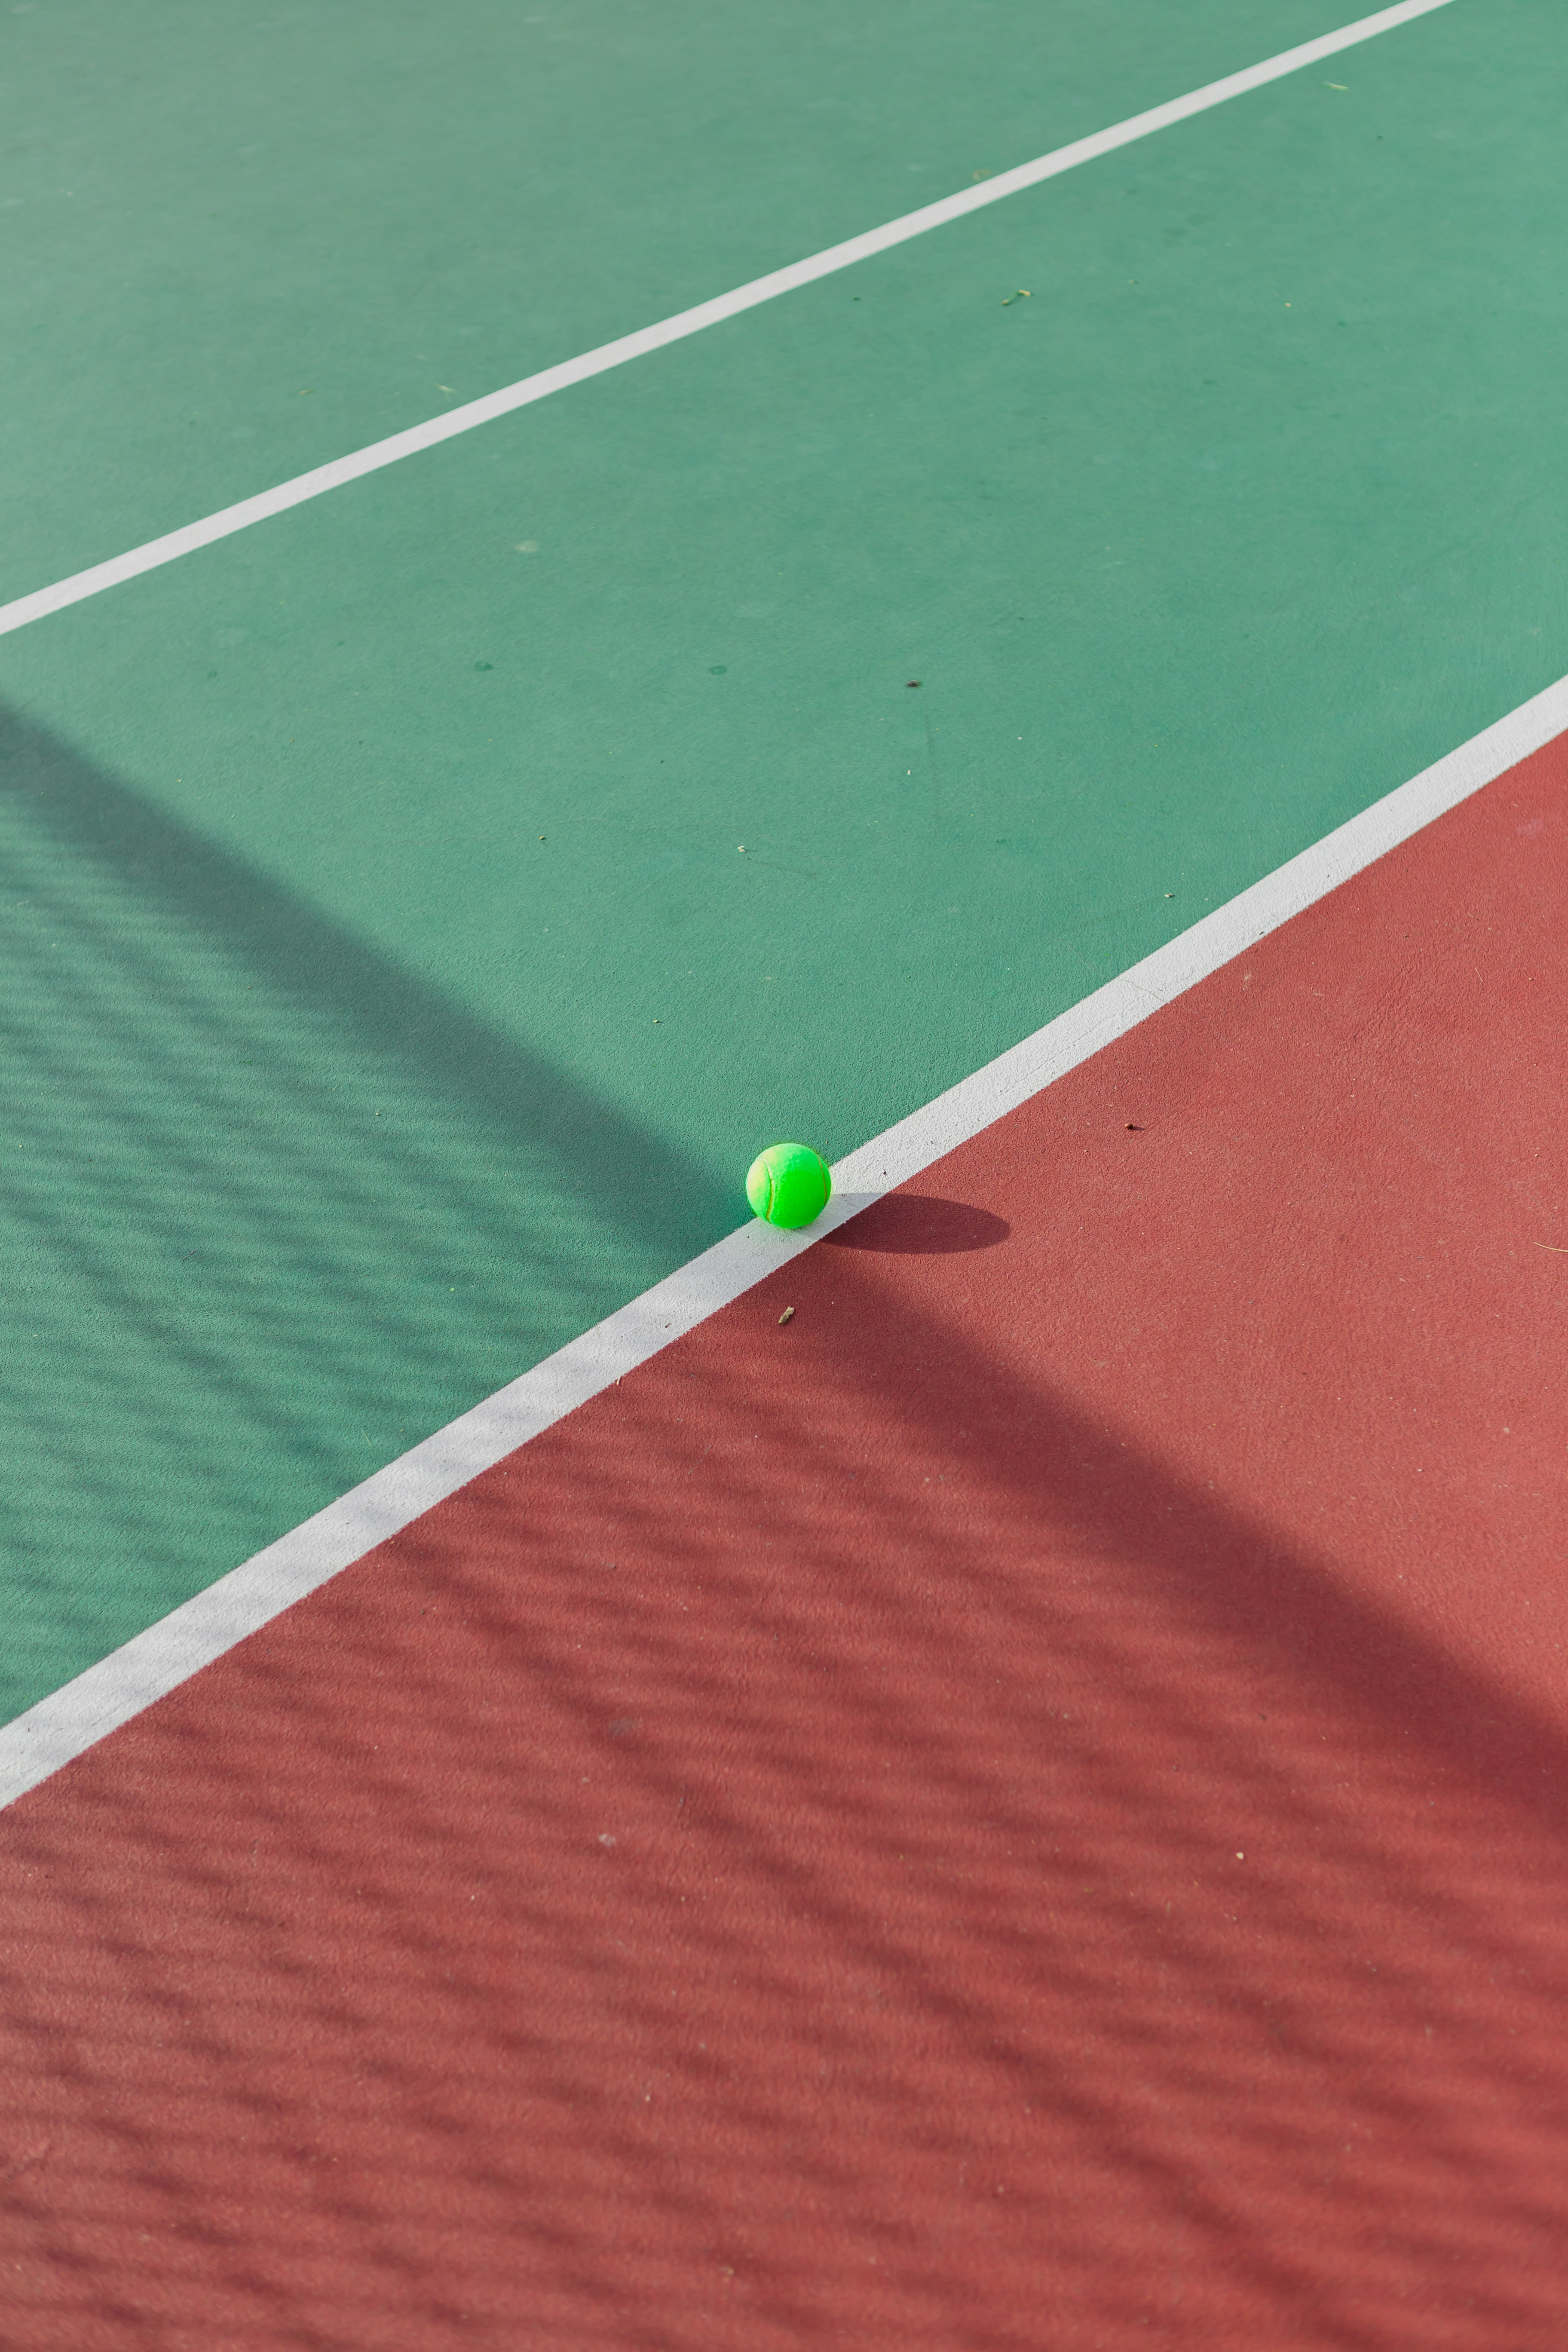 A tennis ball just crossing the line on a tennis court.